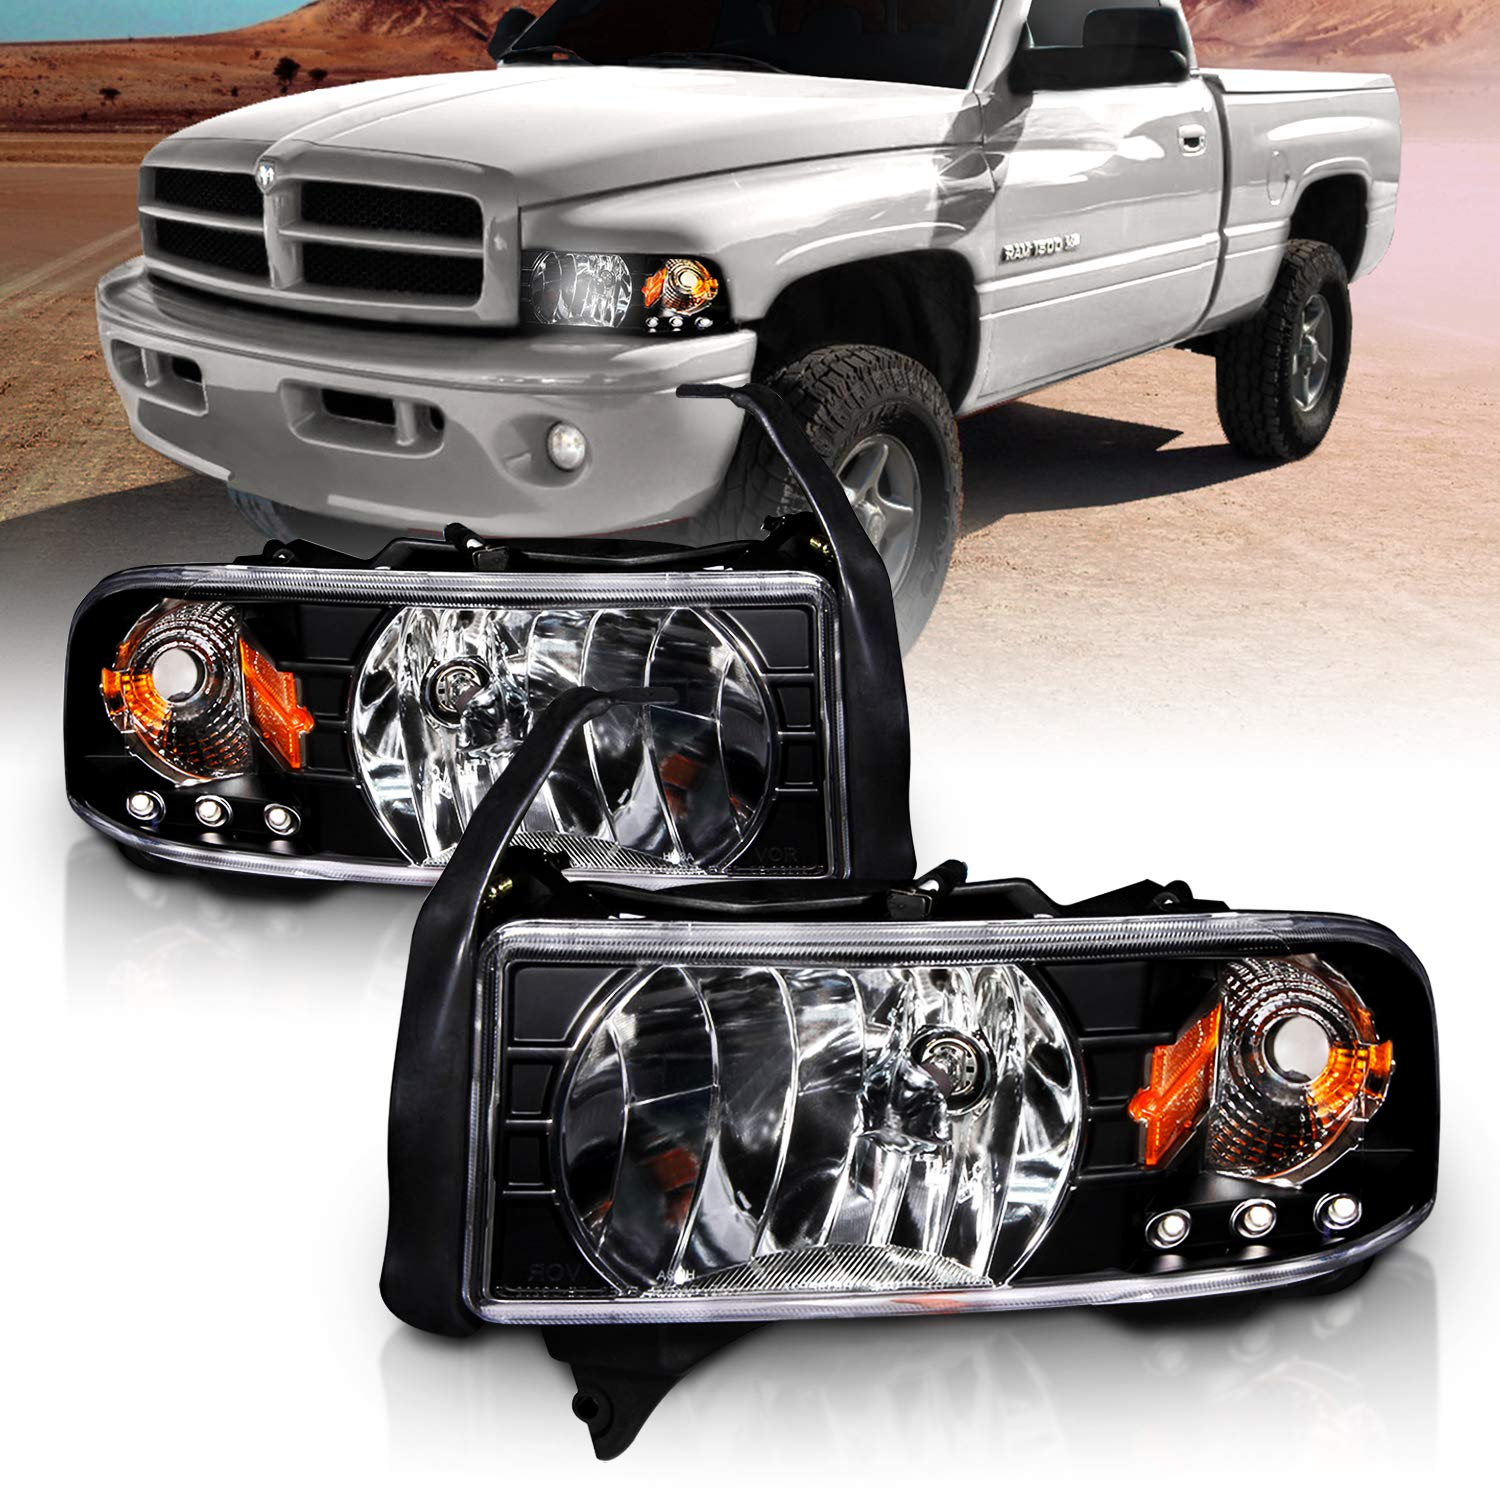 AmeriLite Black 1pc Replacement Headlights w/Corner LED Parking Lamp Assembly Set for 1994-2001 Dodge Ram 1500 2500 3500…